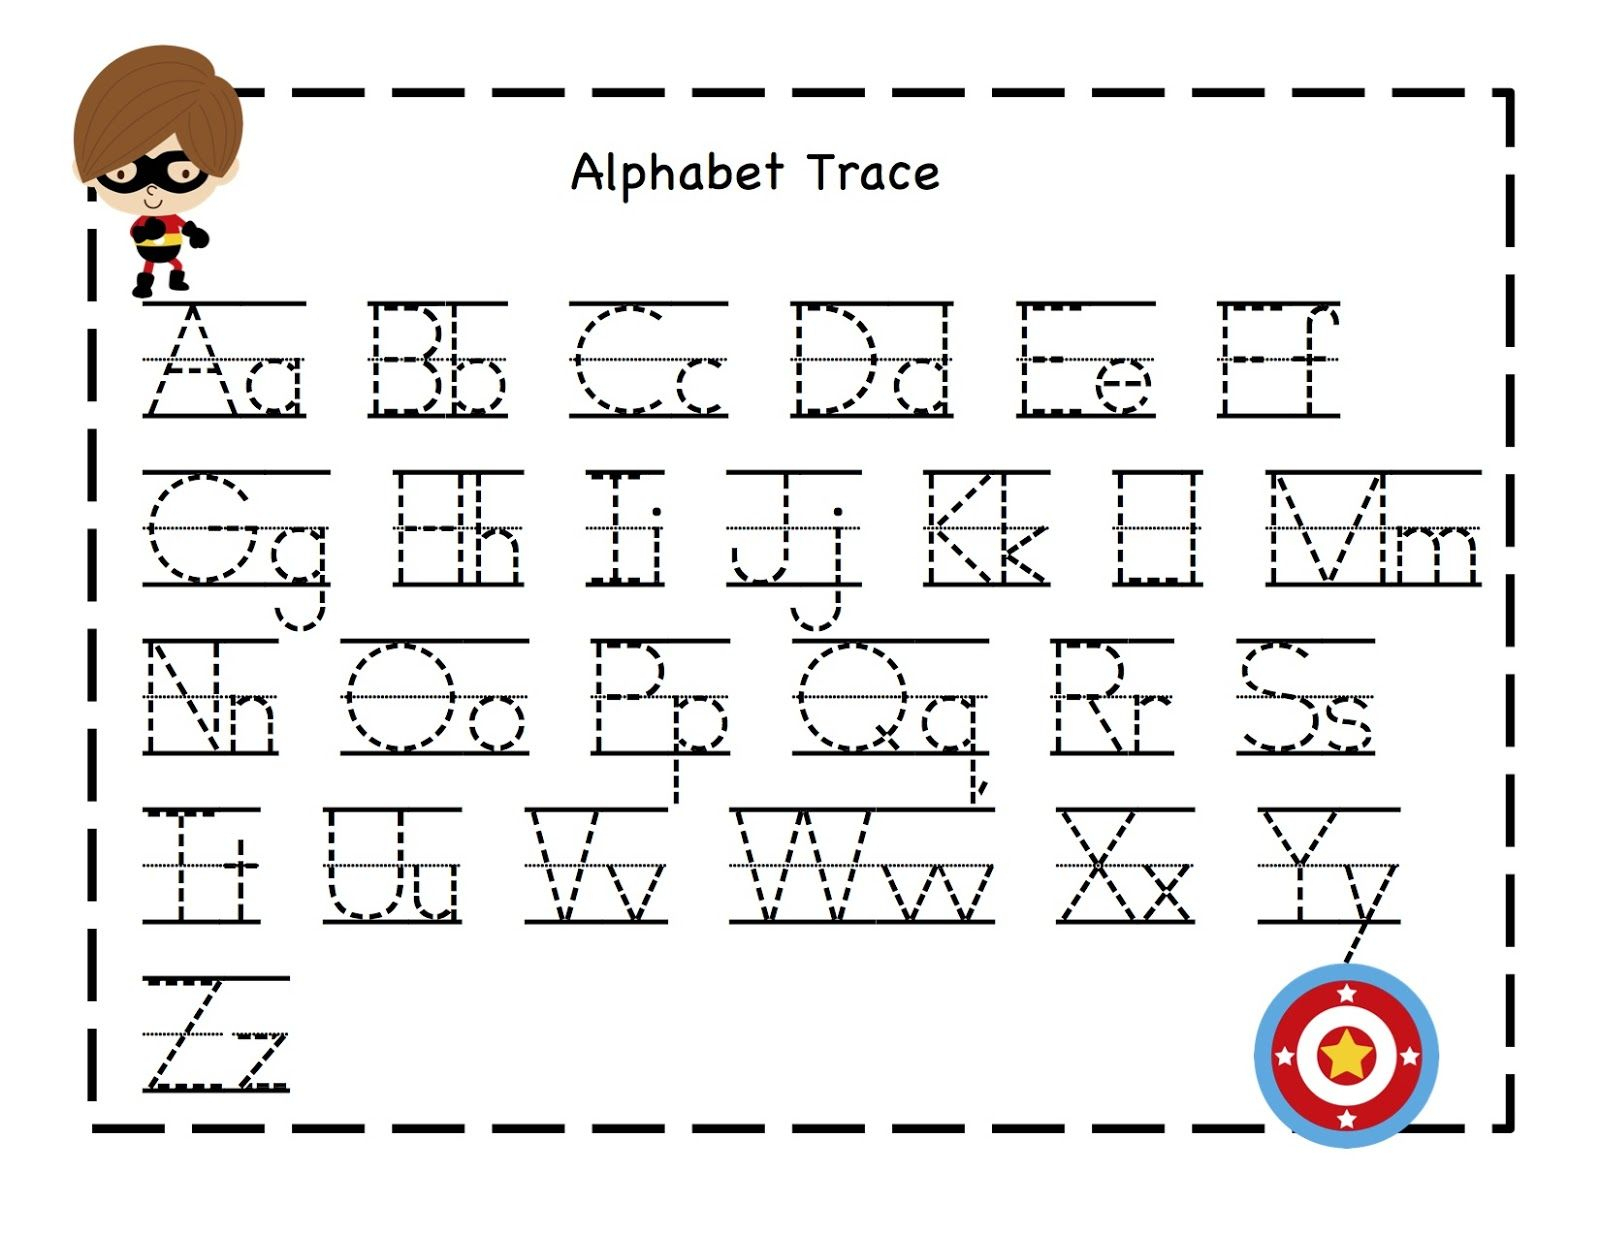 Abc Tracing Sheets For Preschool Kids | Kiddo Shelter | Kids - Free Printable Letter Tracing Sheets